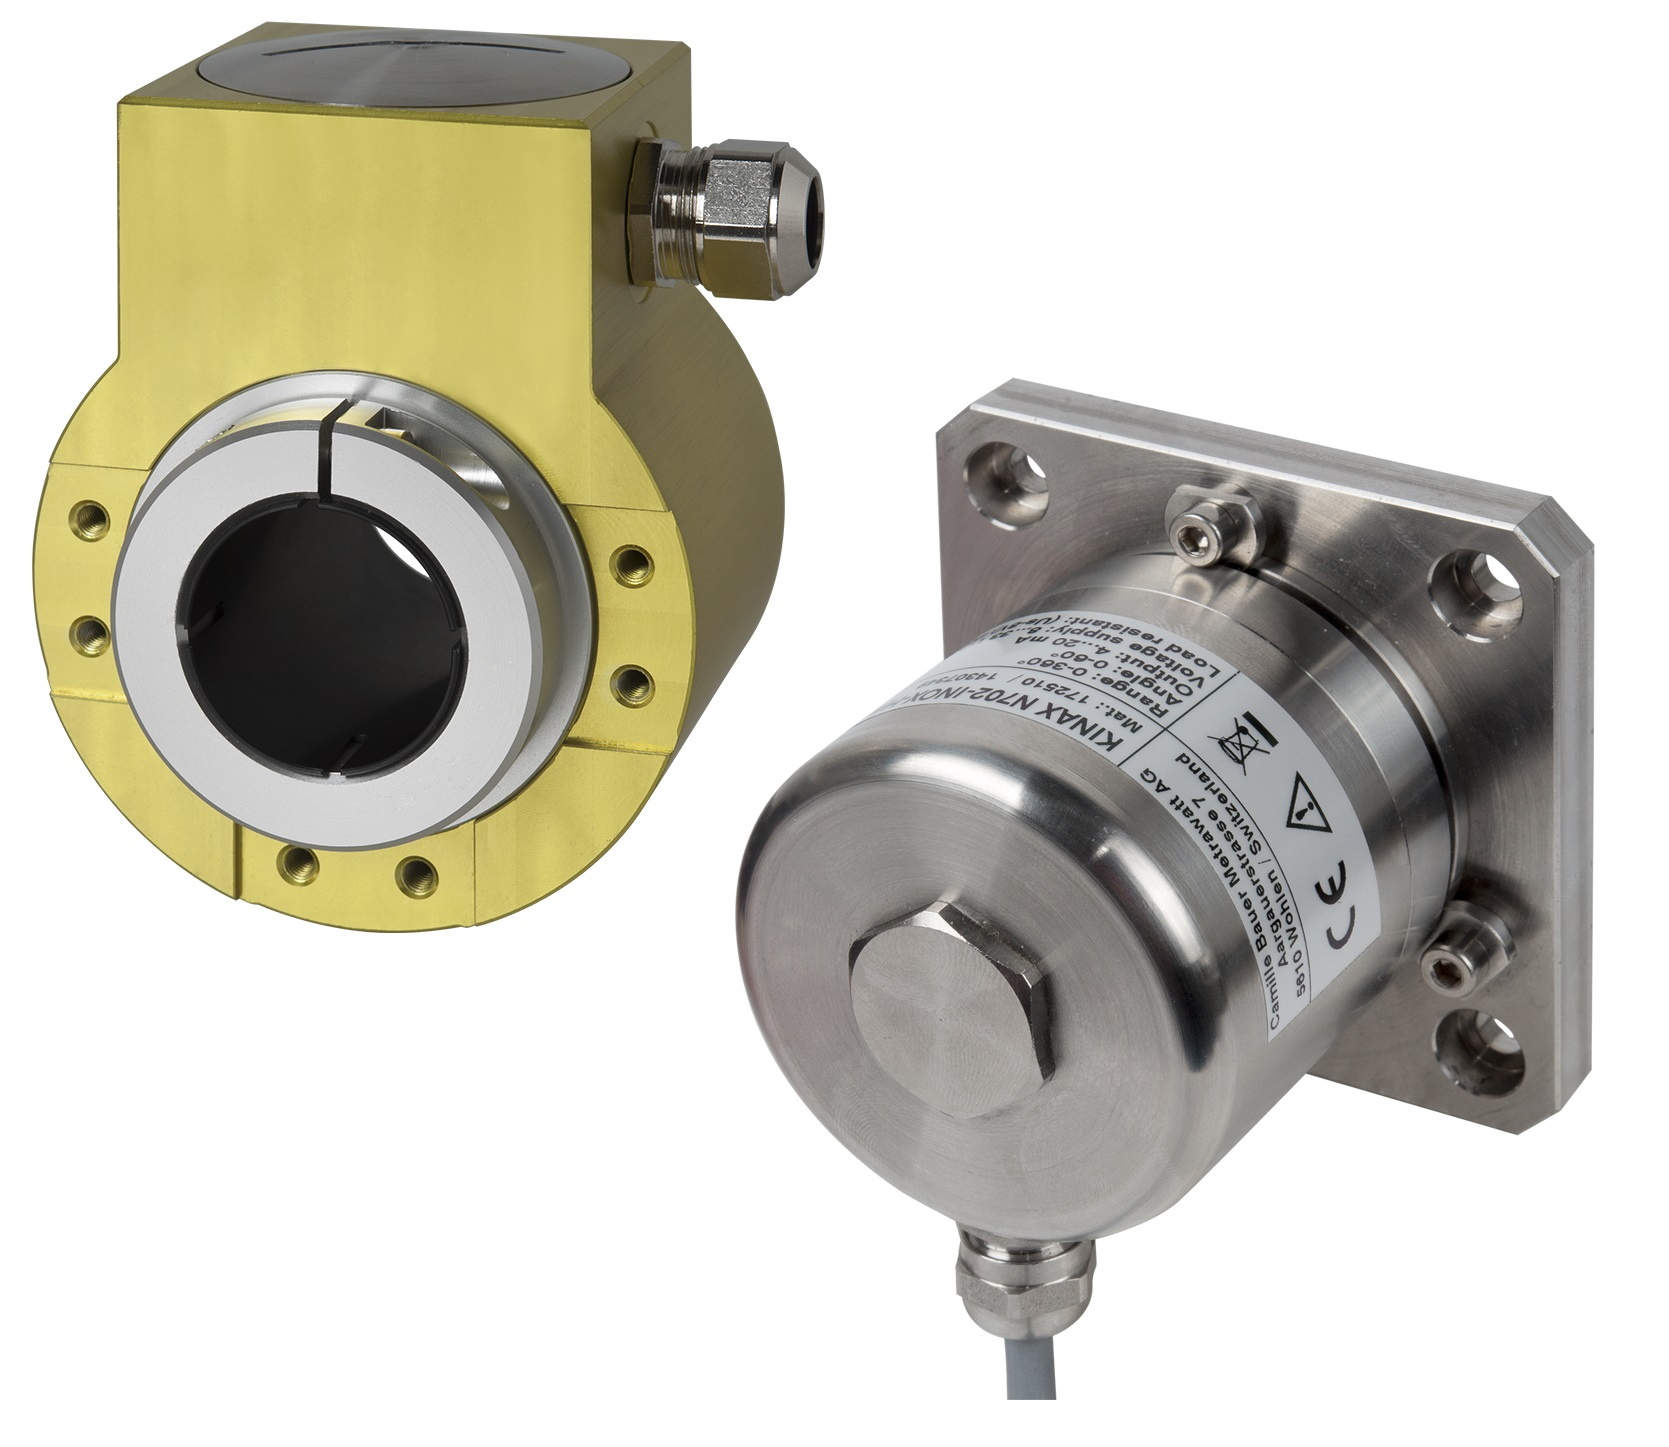 Robust rotary transmitters and tilt sensors